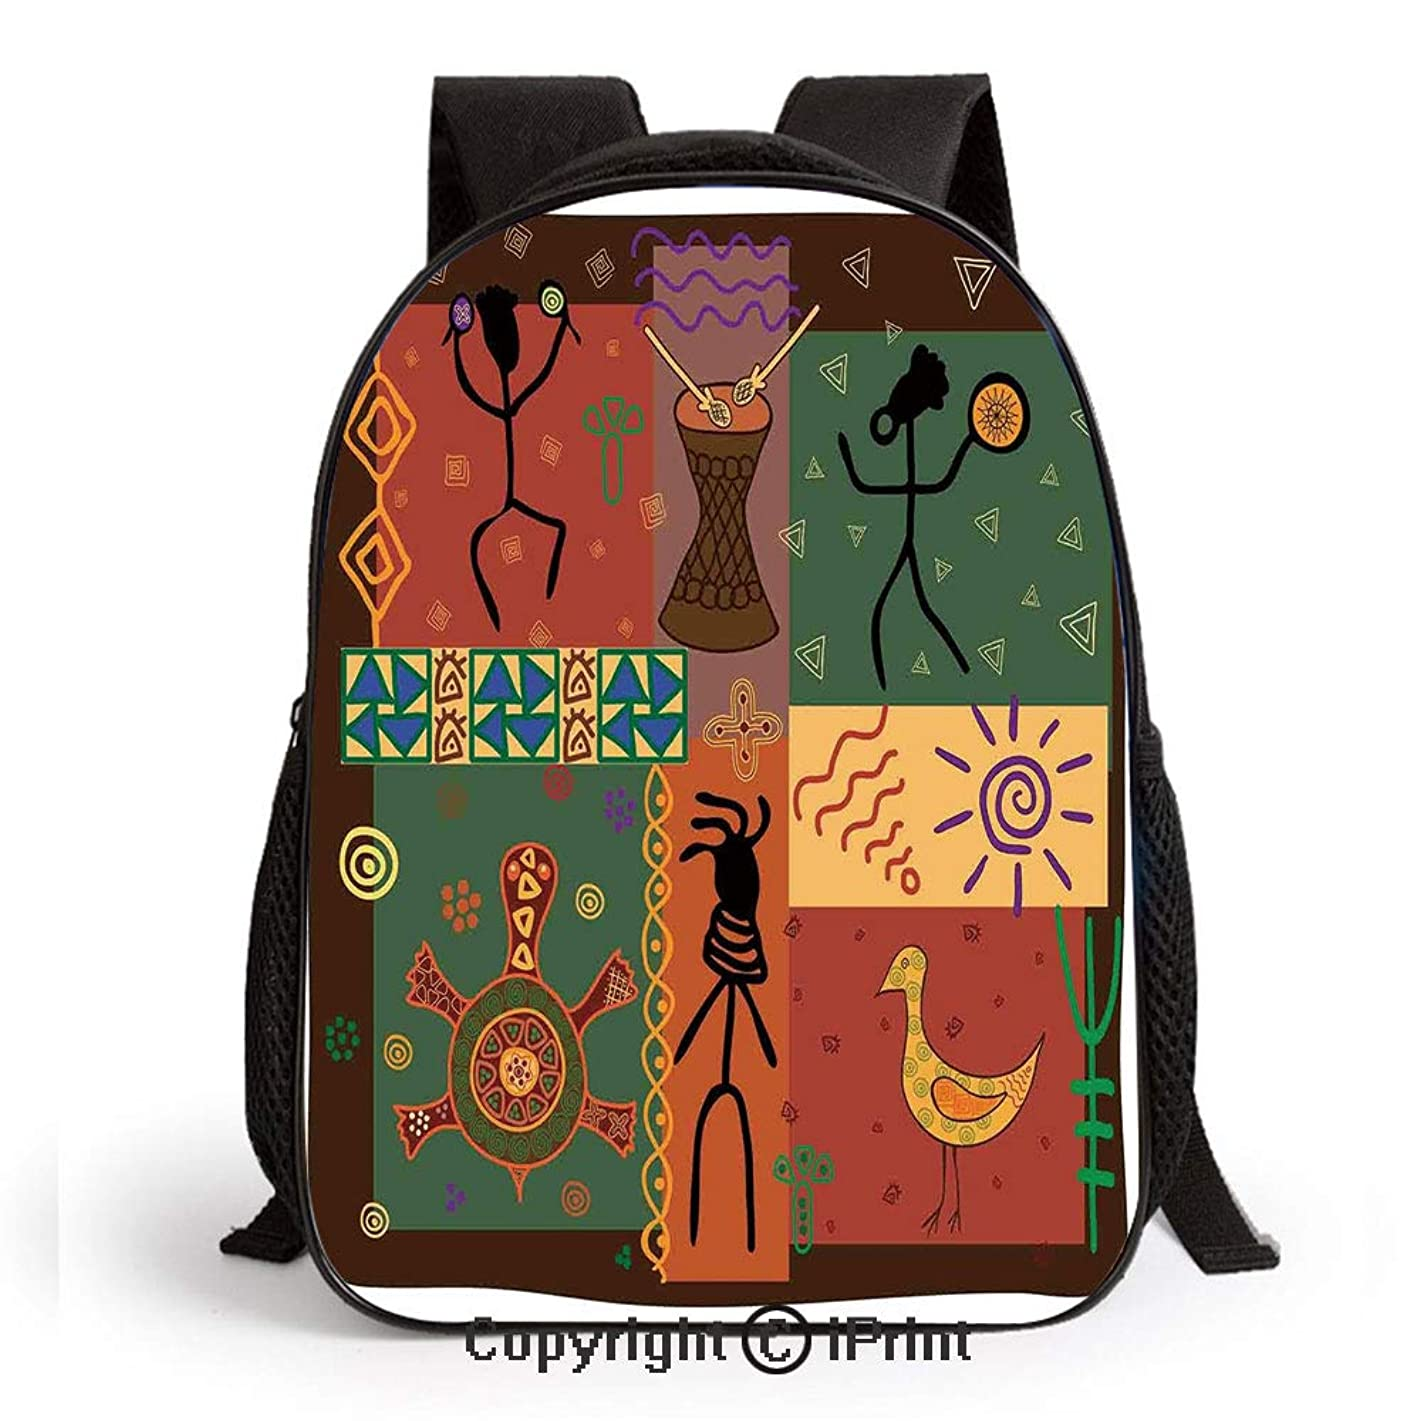 Funky Tribal Pattern Depicting African Style Dance Moves Instruments Spiritual Printed Kids School Backpack Cool Children Bookbag,Multicolor